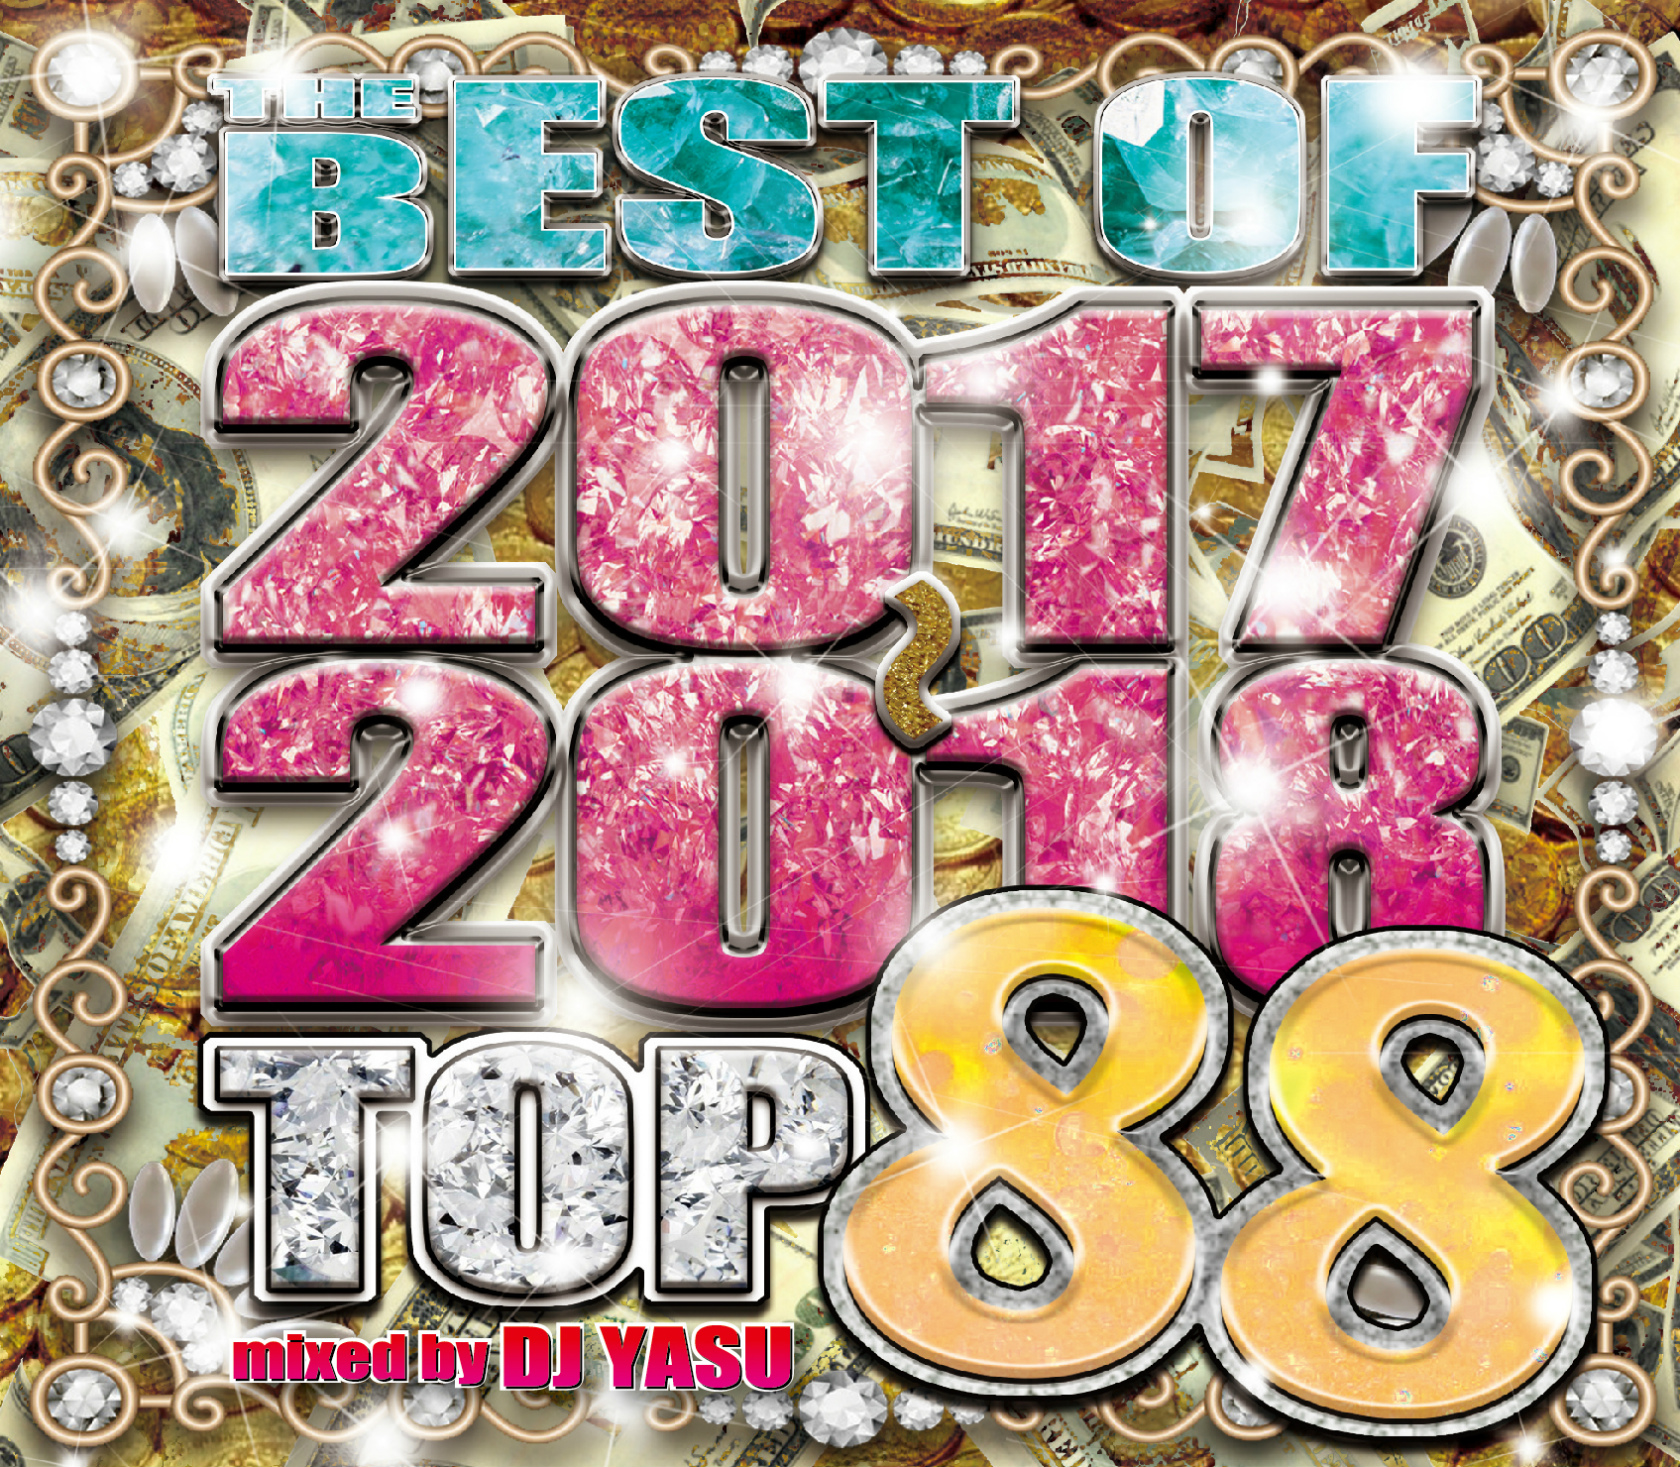 【1枚組】 THE BEST OF 2017-2018 TOP 88 / DJ YASU 【[国内盤MIX CD】